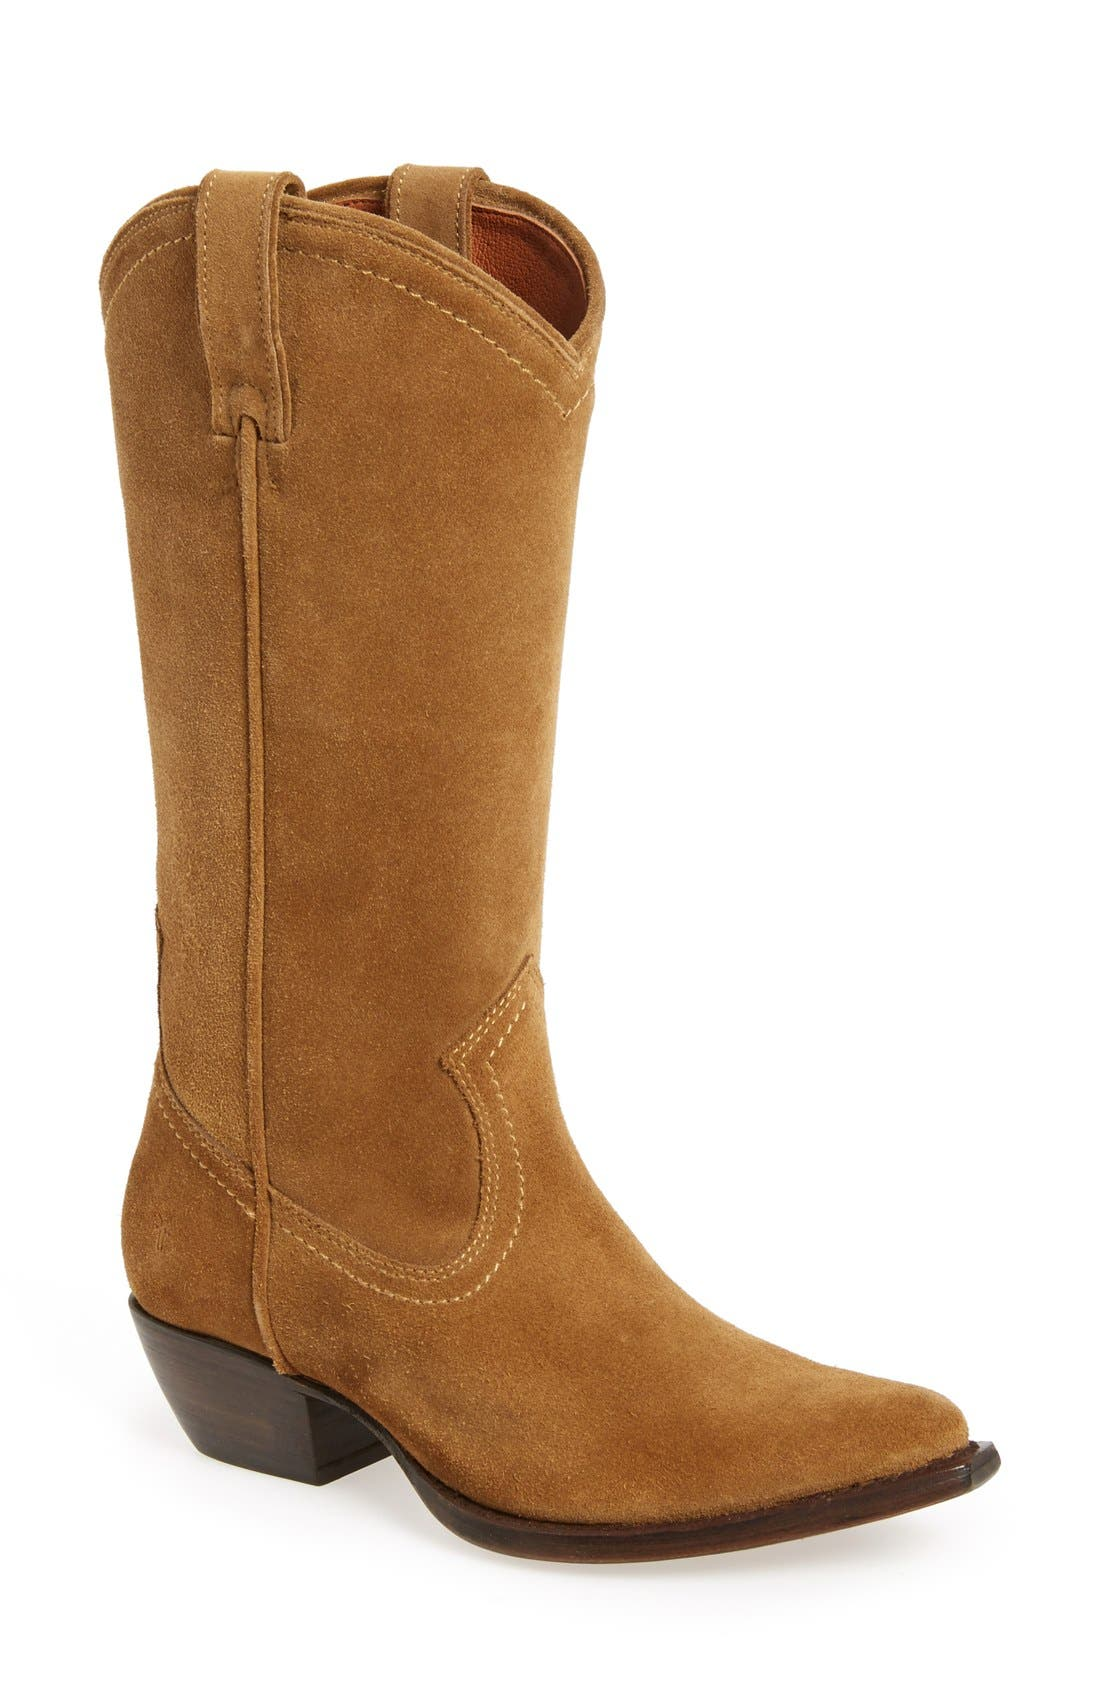 Alternate Image 1 Selected - Frye 'Sacha' Boot (Women)